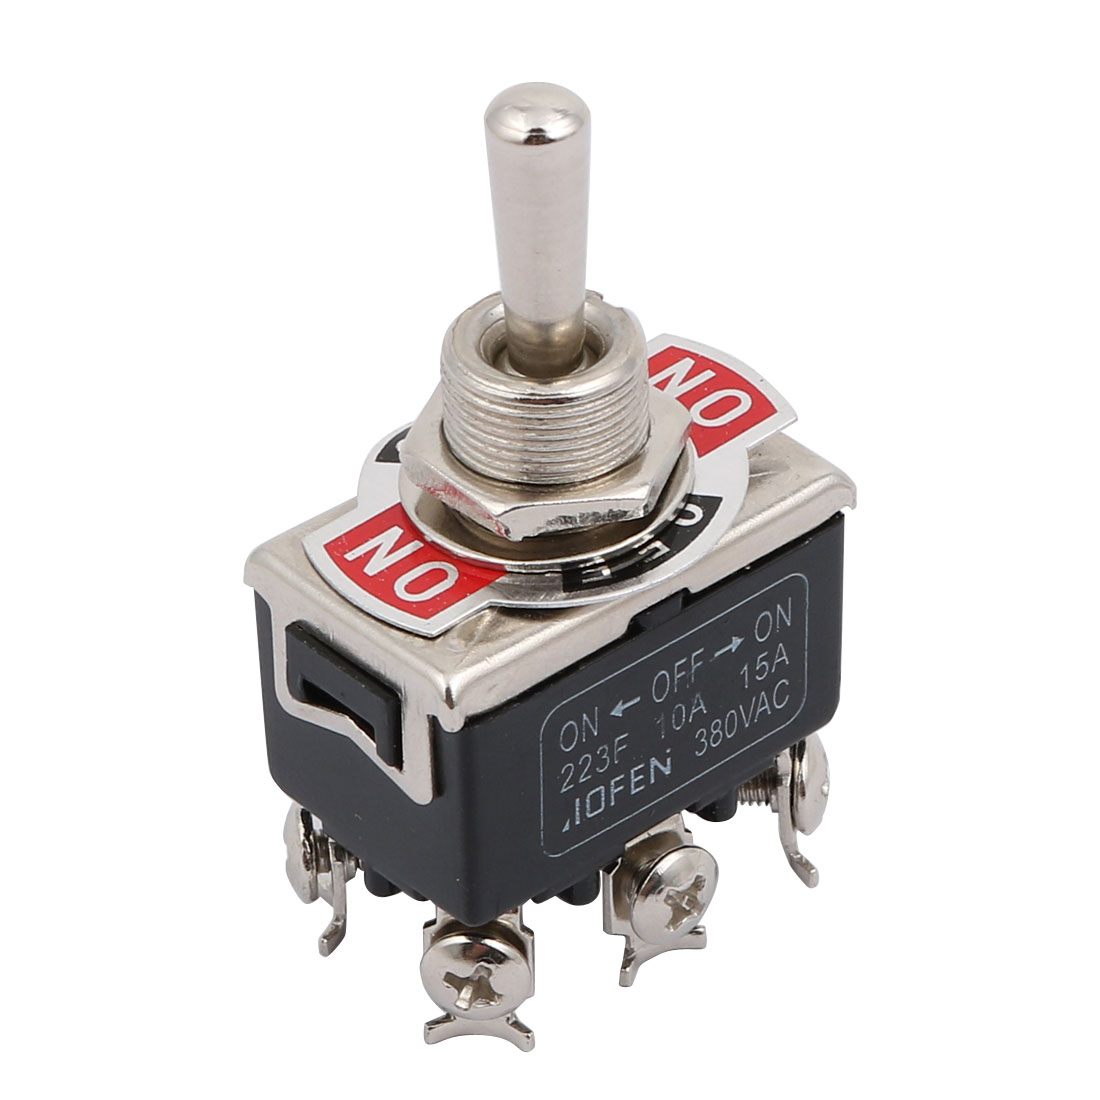 AC 380V 10A/15A On/Off/On 3 Position DPDT Toggle Switch w 6 Screw Terminals